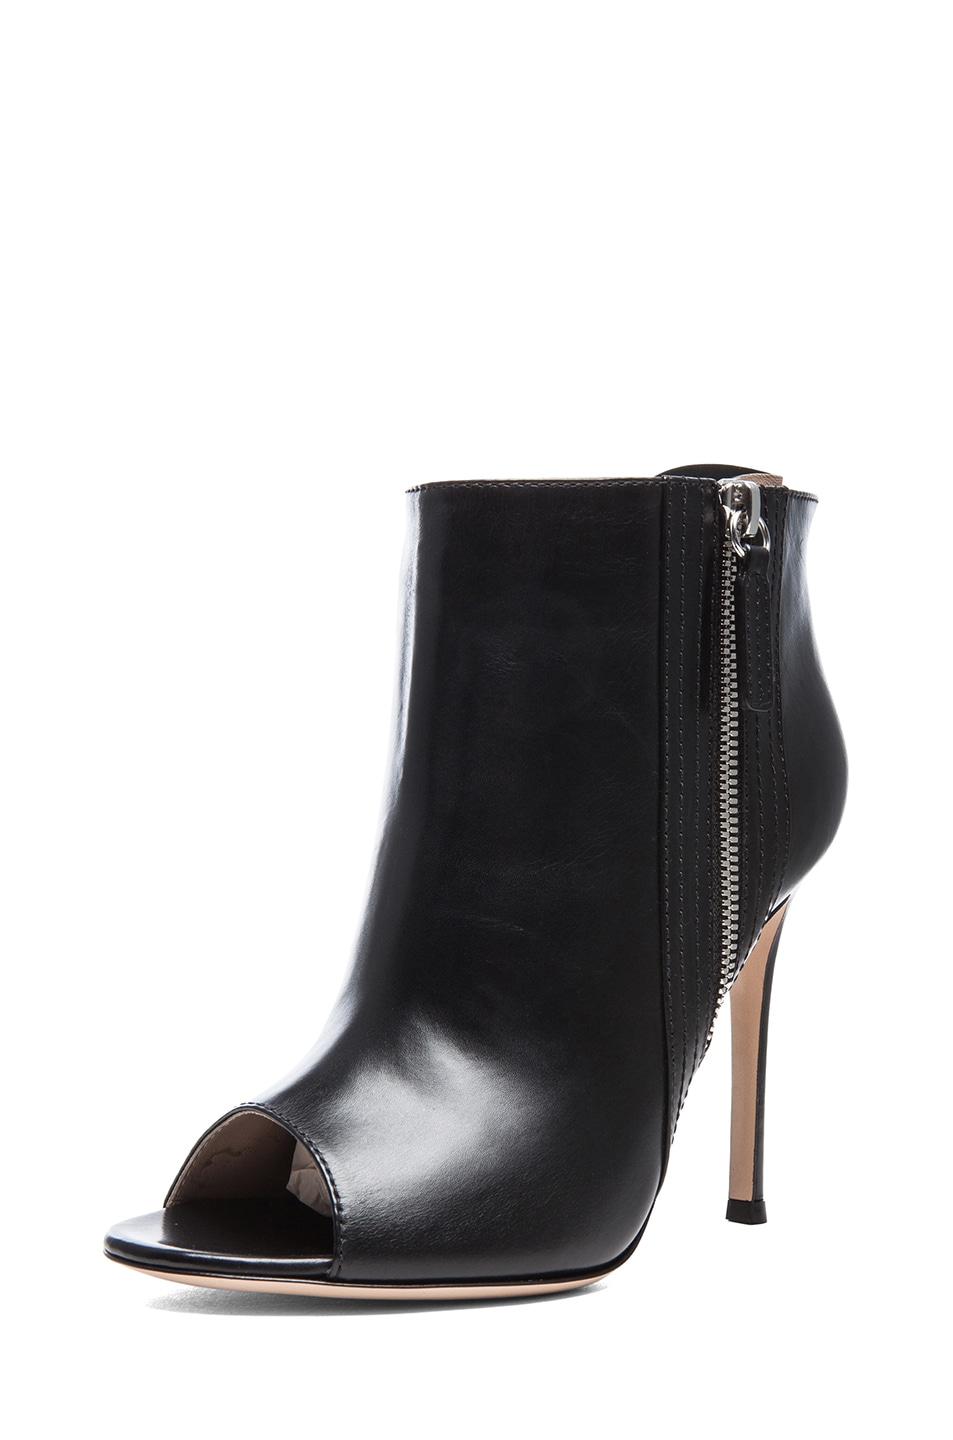 Image 2 of Gianvito Rossi Open Toe Leather Booties in Black